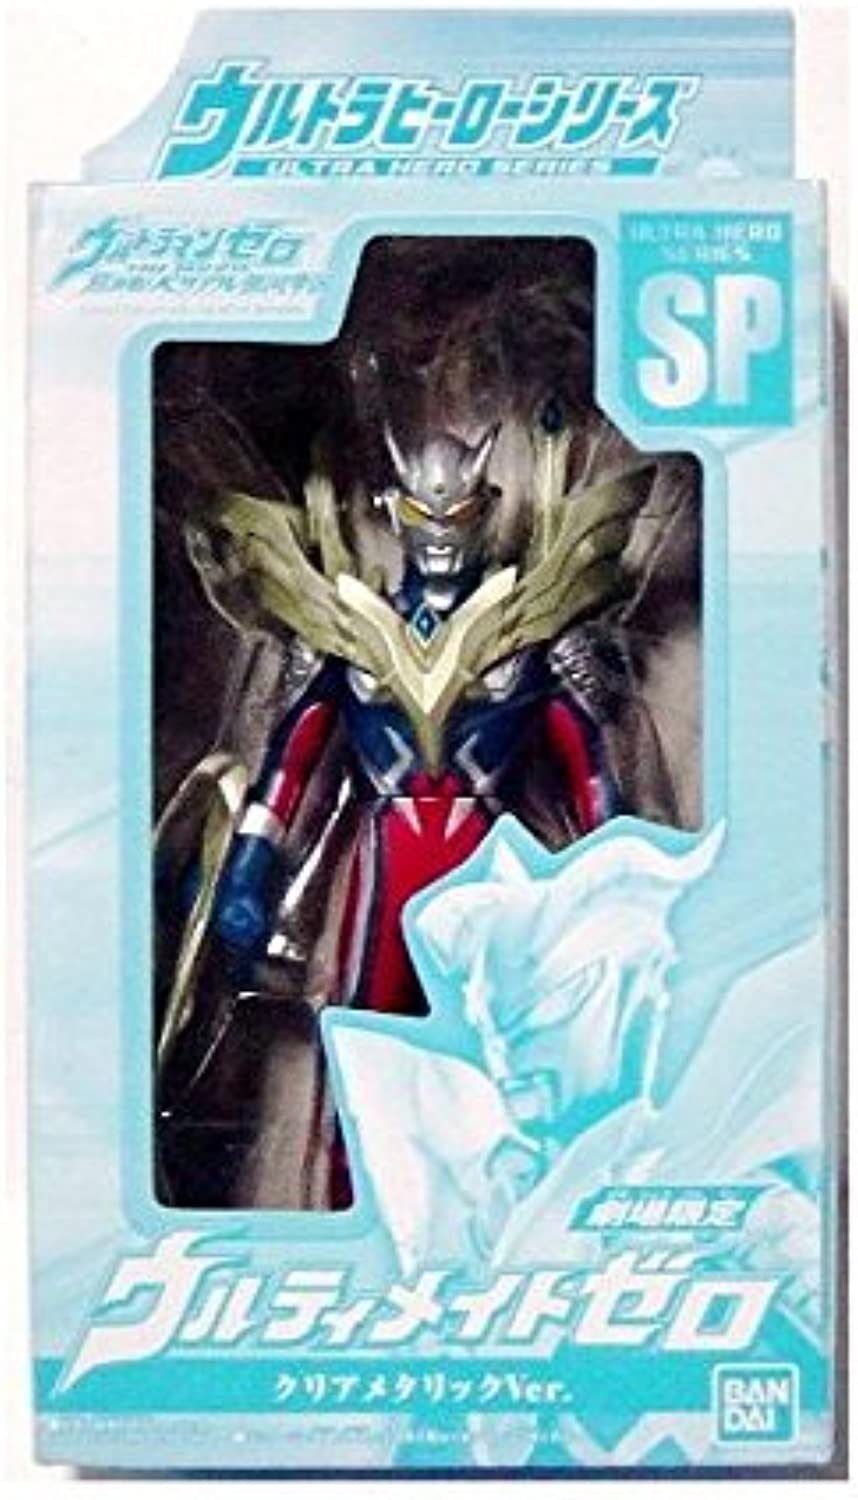 Limited theater Ultra Hero Series SP Ultimate zero clear metallic ver. (japan import)